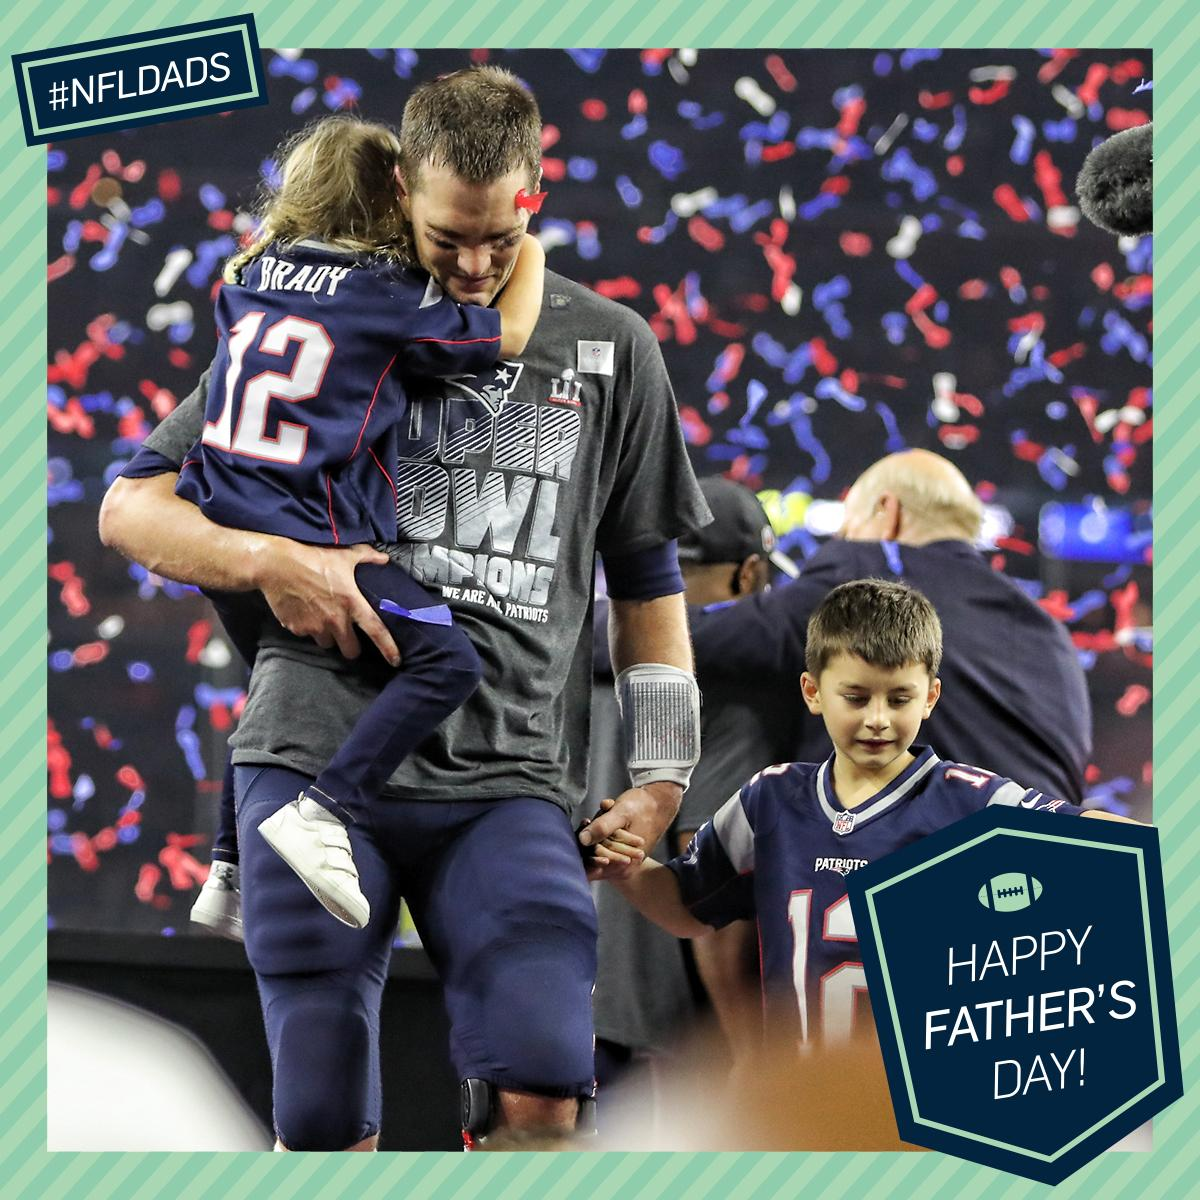 Greatest (dad) of all time. ��  #FathersDay #NFLDads https://t.co/81GUP6tg0U